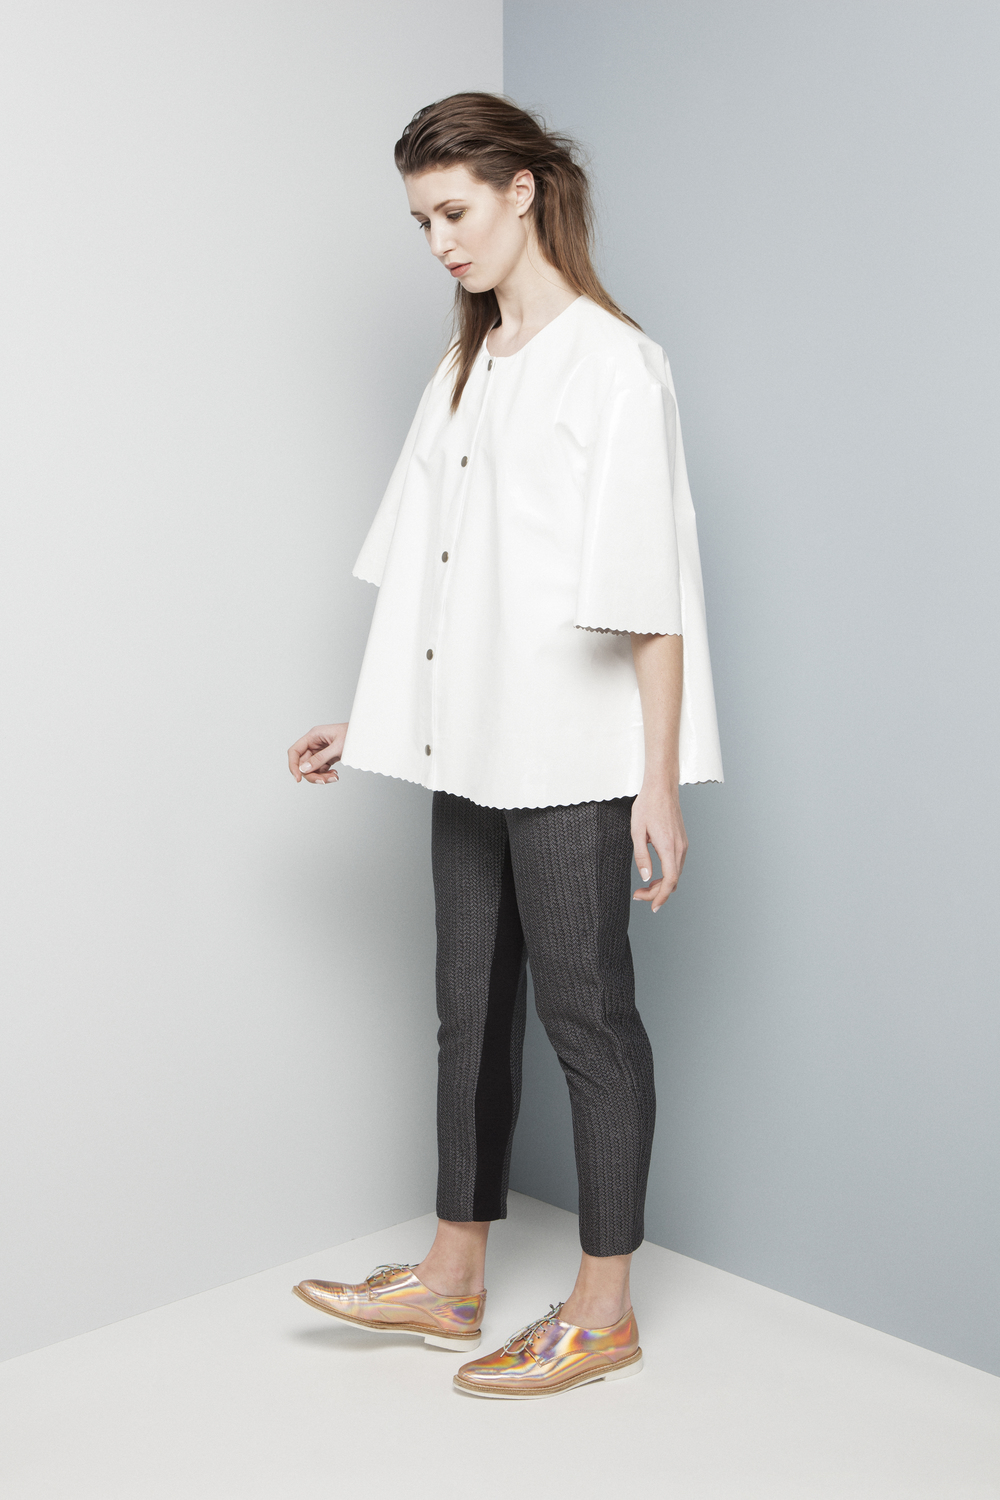 Manley AW14 Abbie Patent Jacket €375 and Rylie Pants €275 .jpg